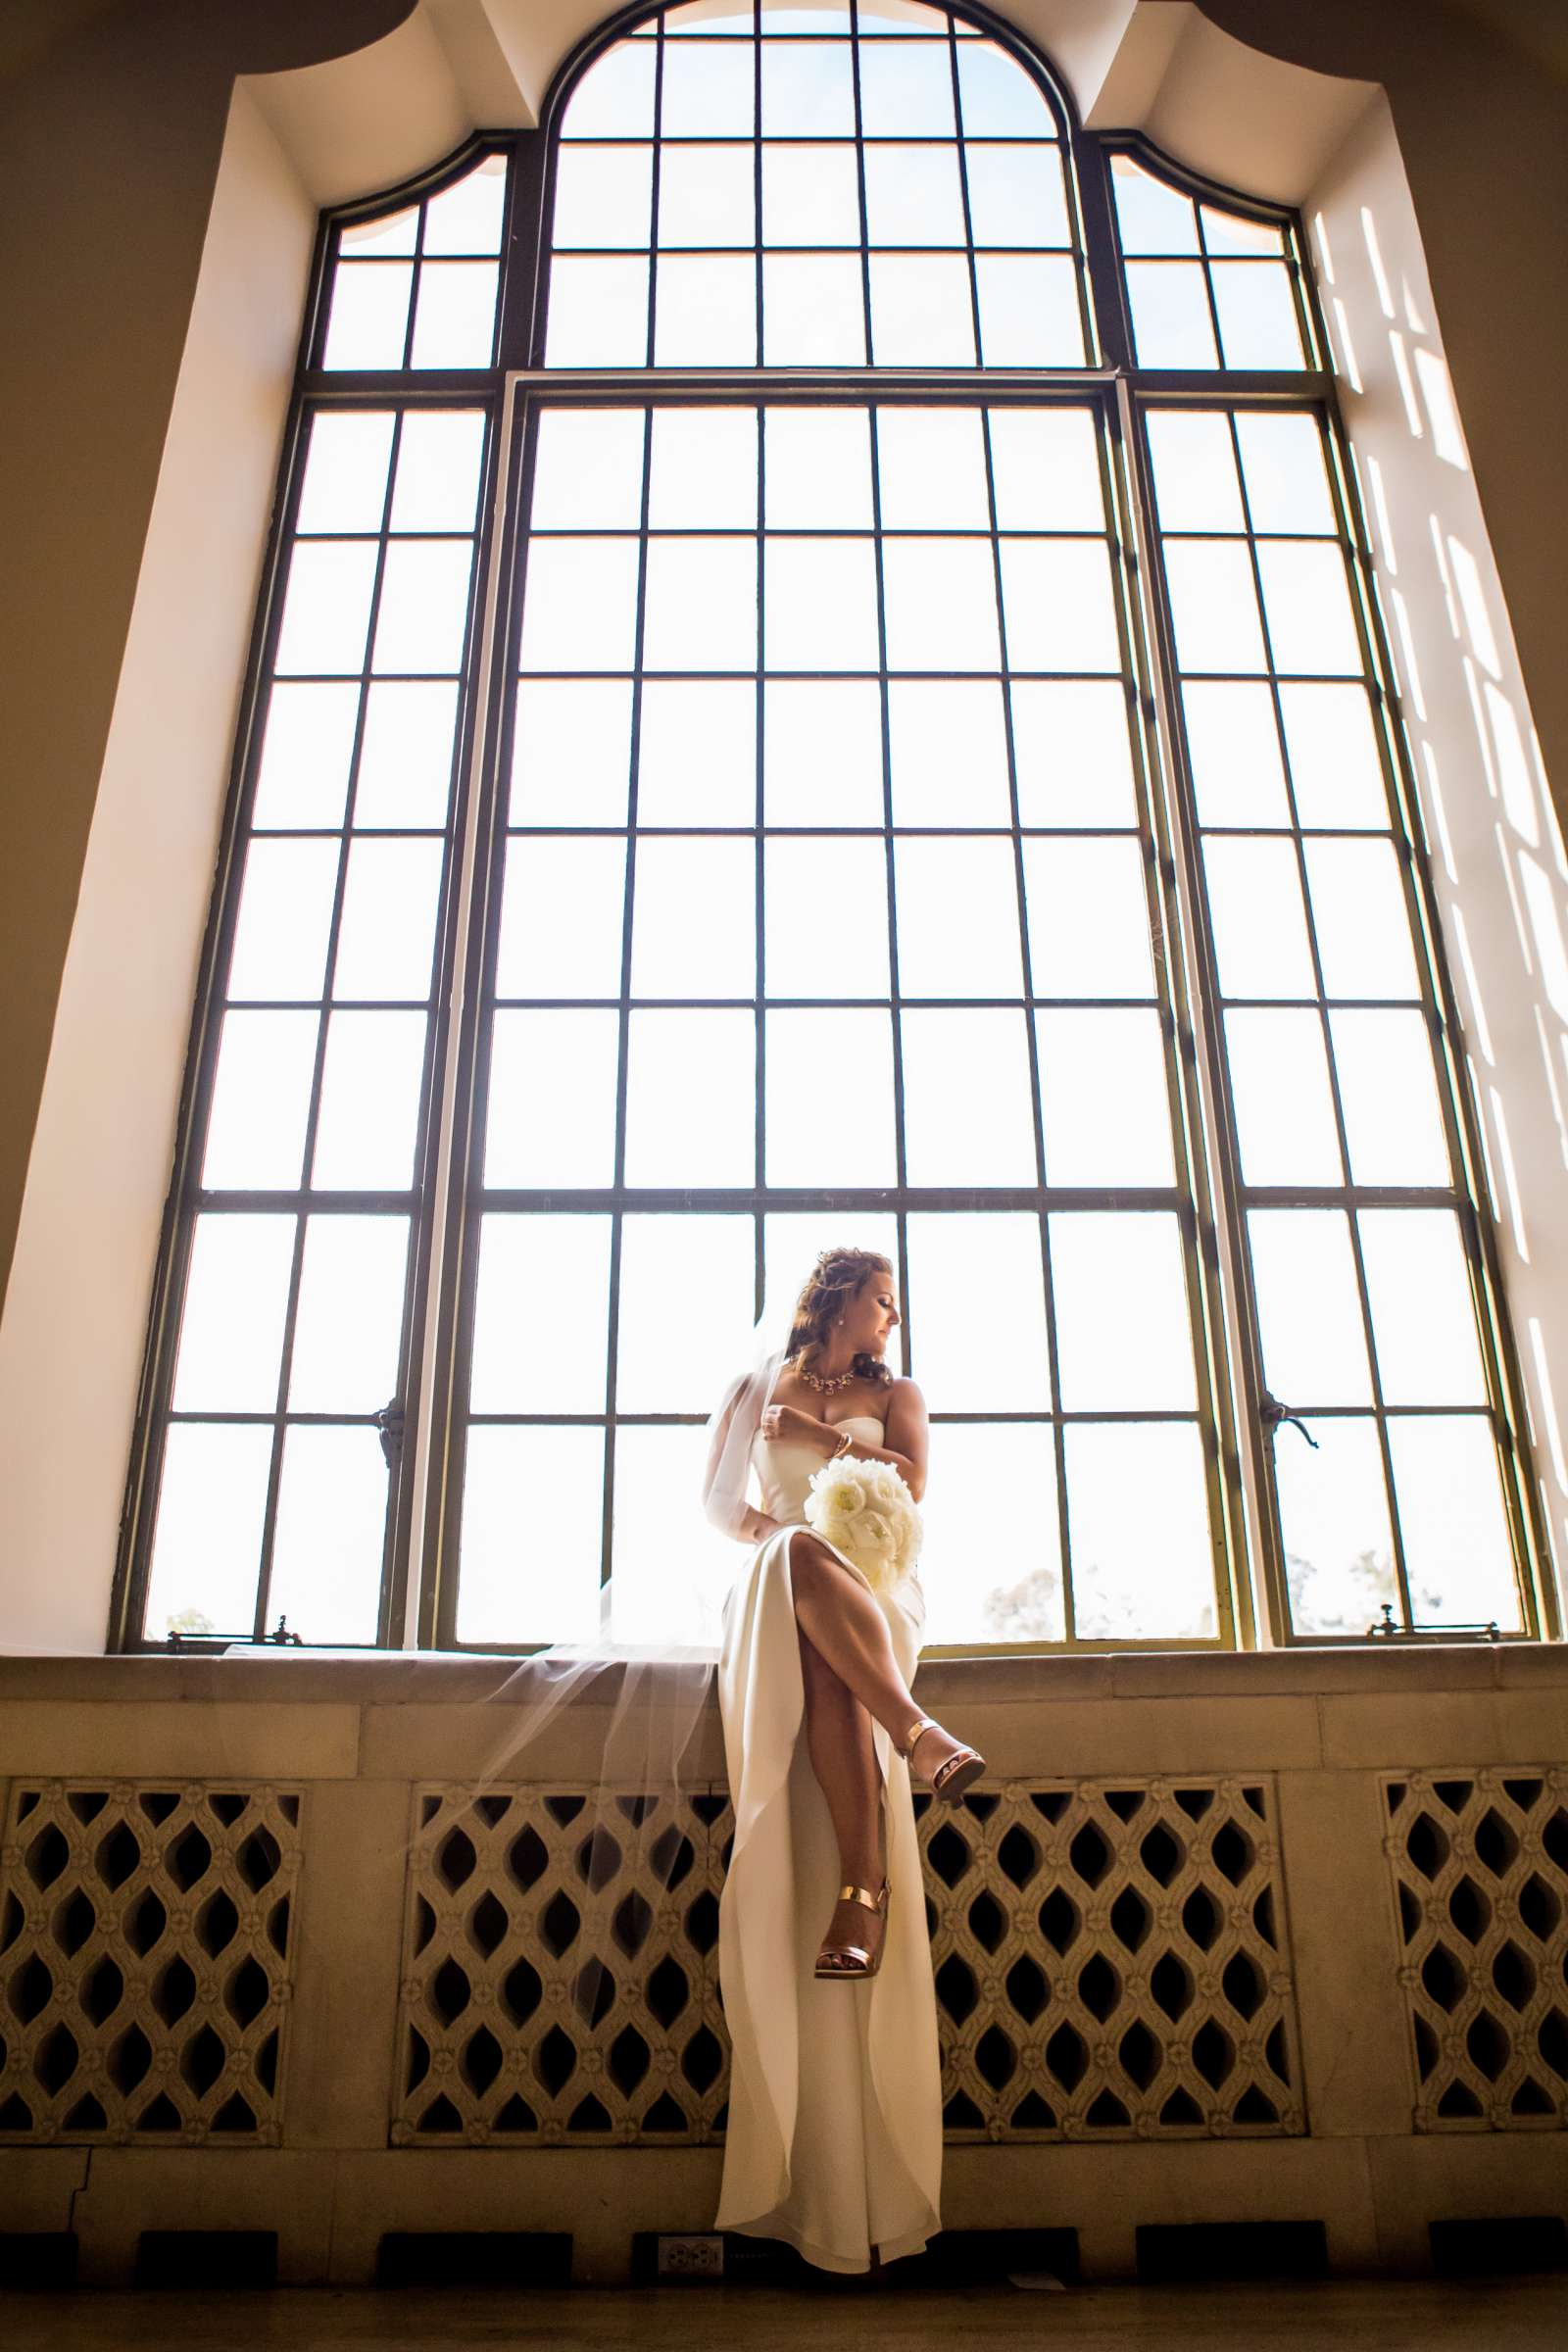 Bride at San Diego Museum of Art Wedding coordinated by First Comes Love Weddings & Events, Ruthie and Larry Wedding Photo #236746 by True Photography